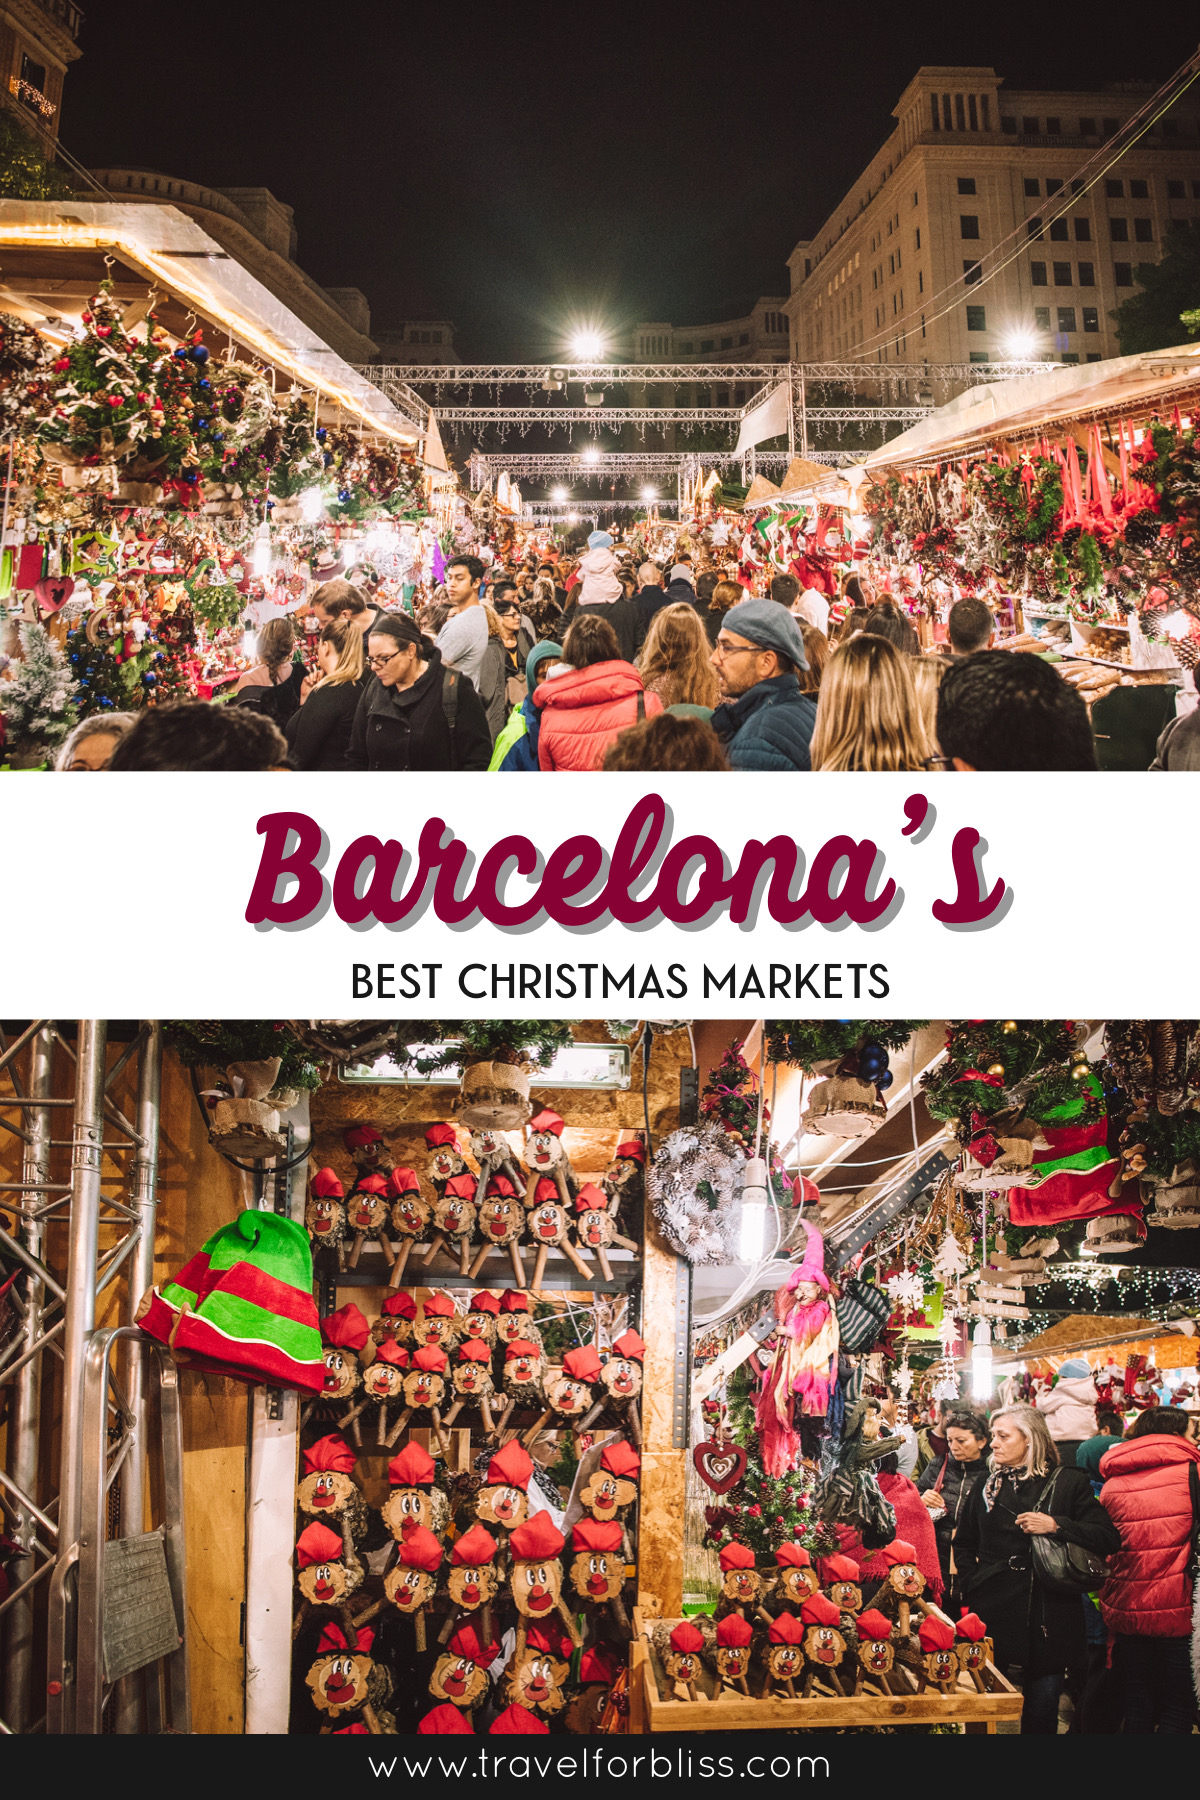 Travel Guide on Barcelona's best Christmas Markets. Find out where to enjoy the christmas markets in Barcelona